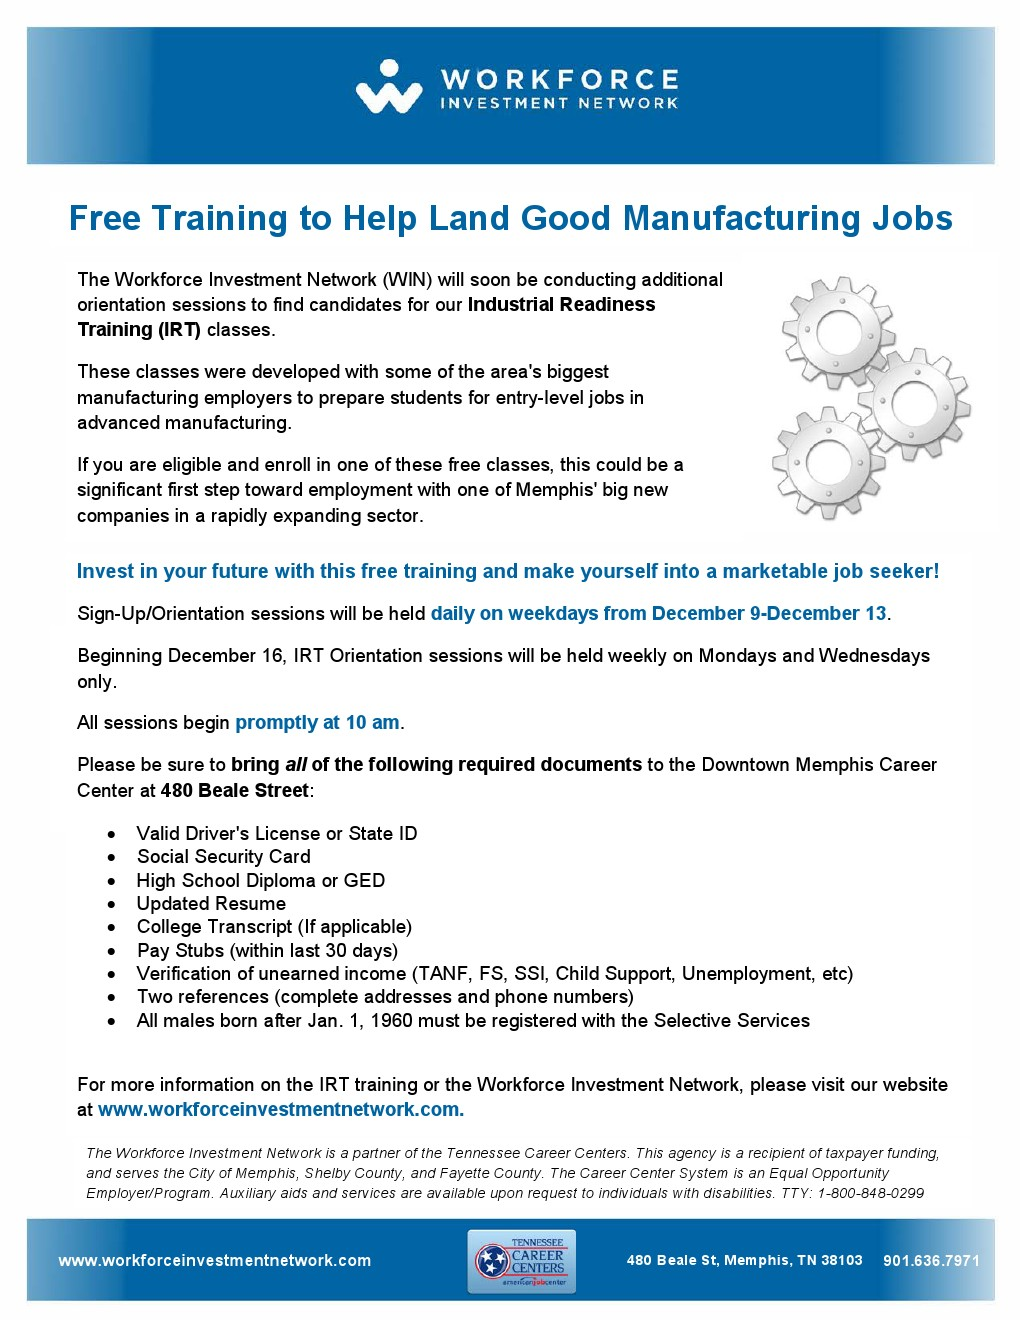 Training for Manufacturing Job Skills | Job & Career News from the ...